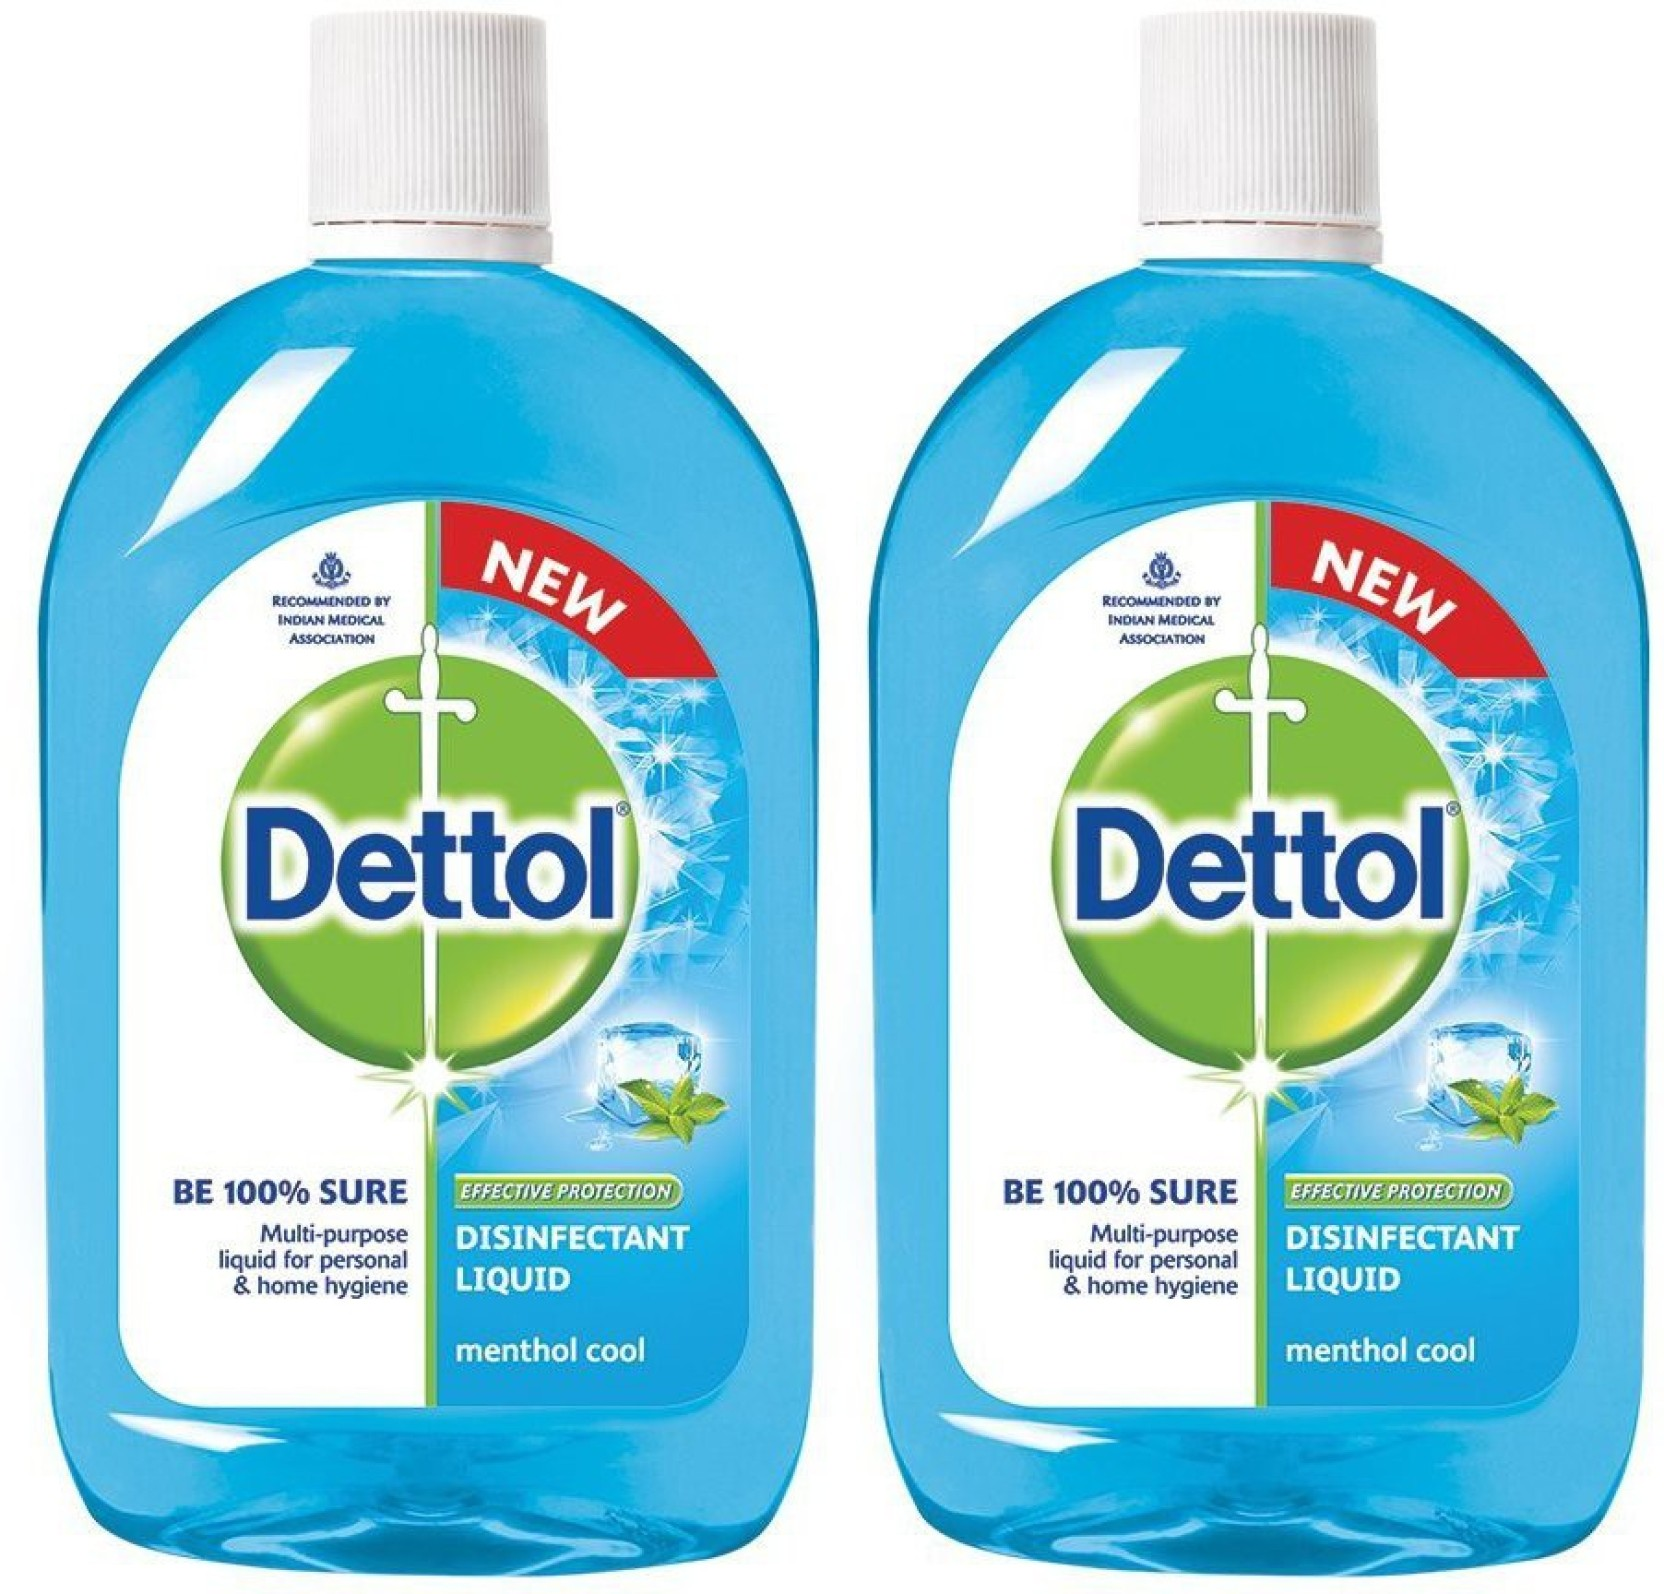 Dettol Disinfectant Liquid 500 Ml Pack Of 2 Kitchen Cleaner Original Series Package Home